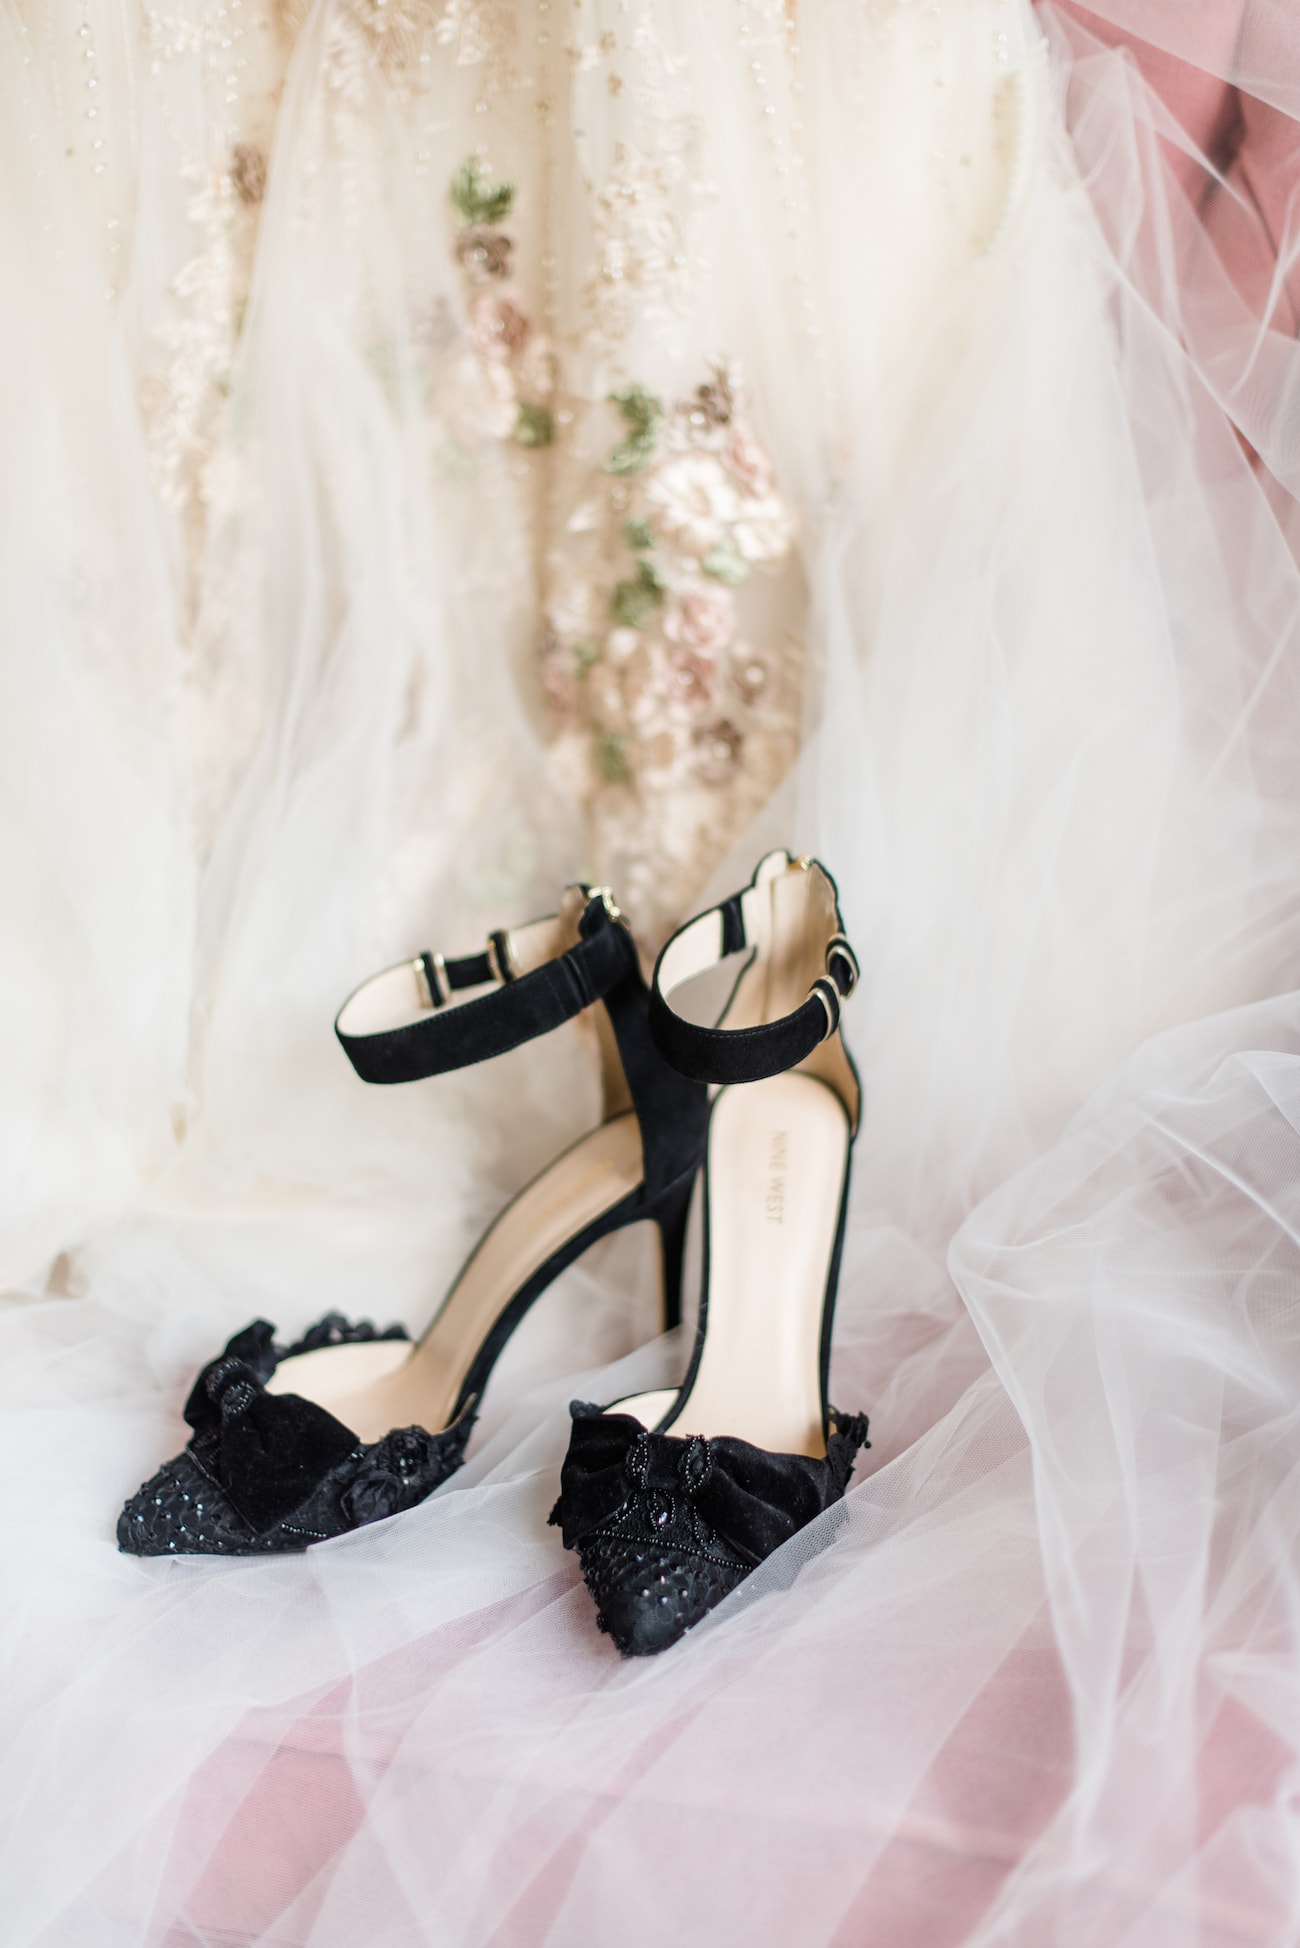 Black Bridal Shoes | Image: Roxanne Davison